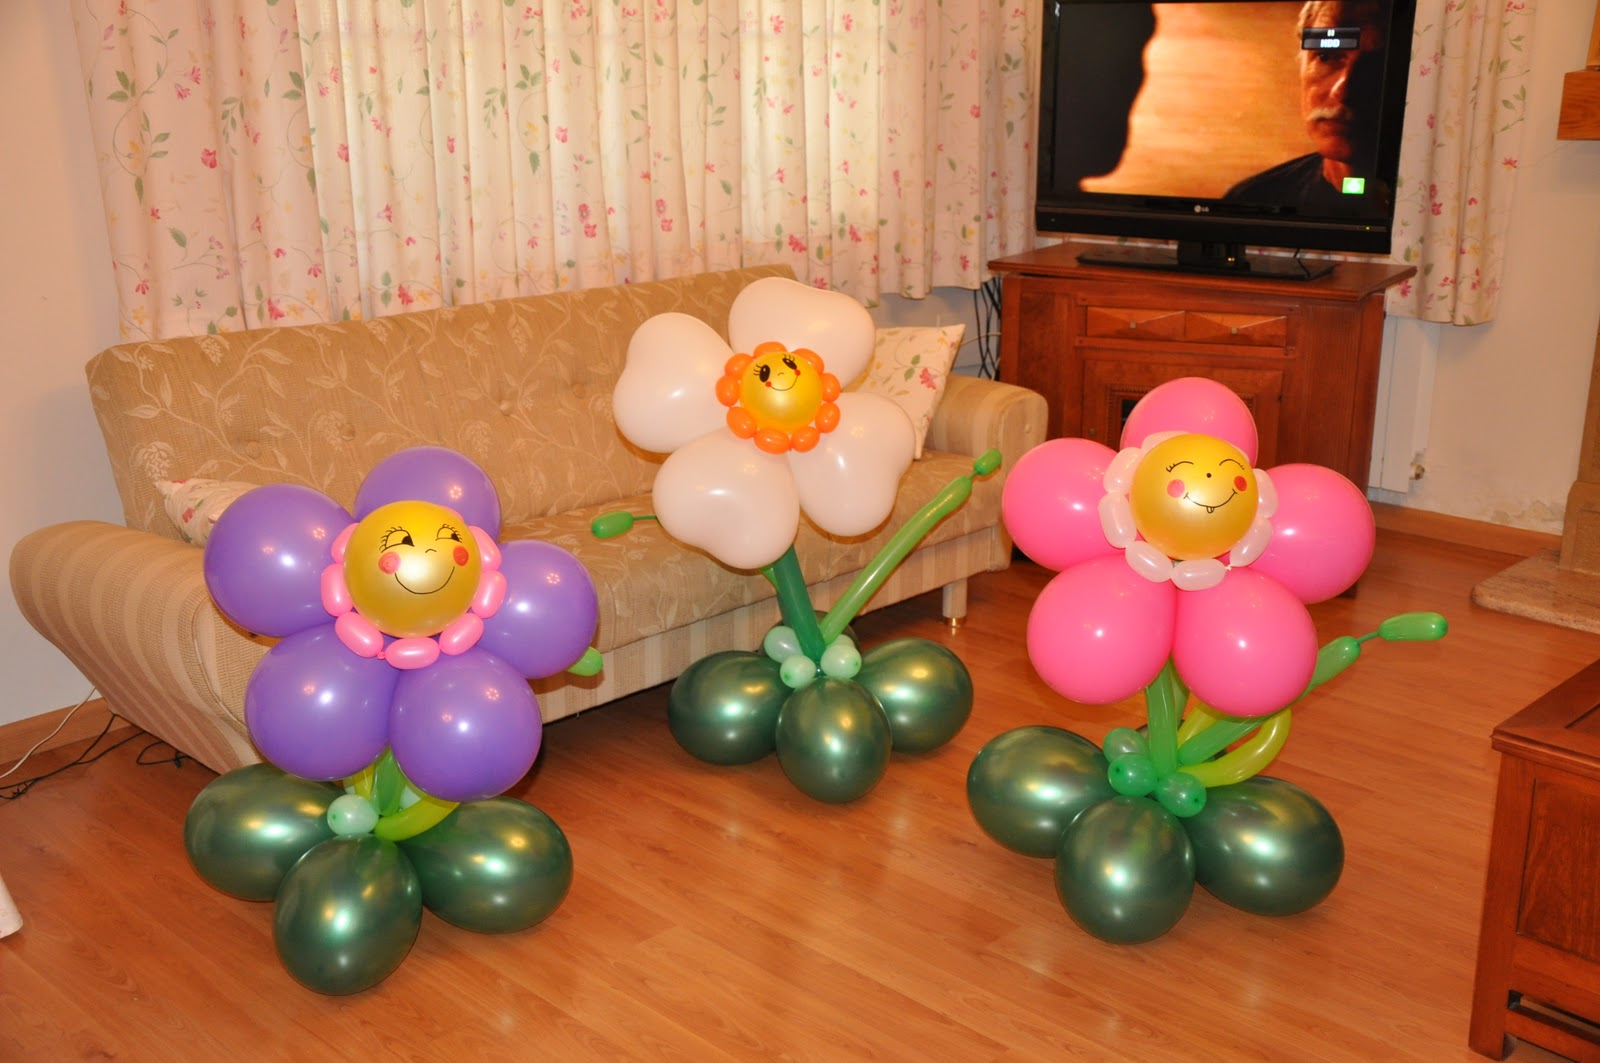 Decoraciones infantiles con globos decoraciones infantiles for Decoraciones para decorar